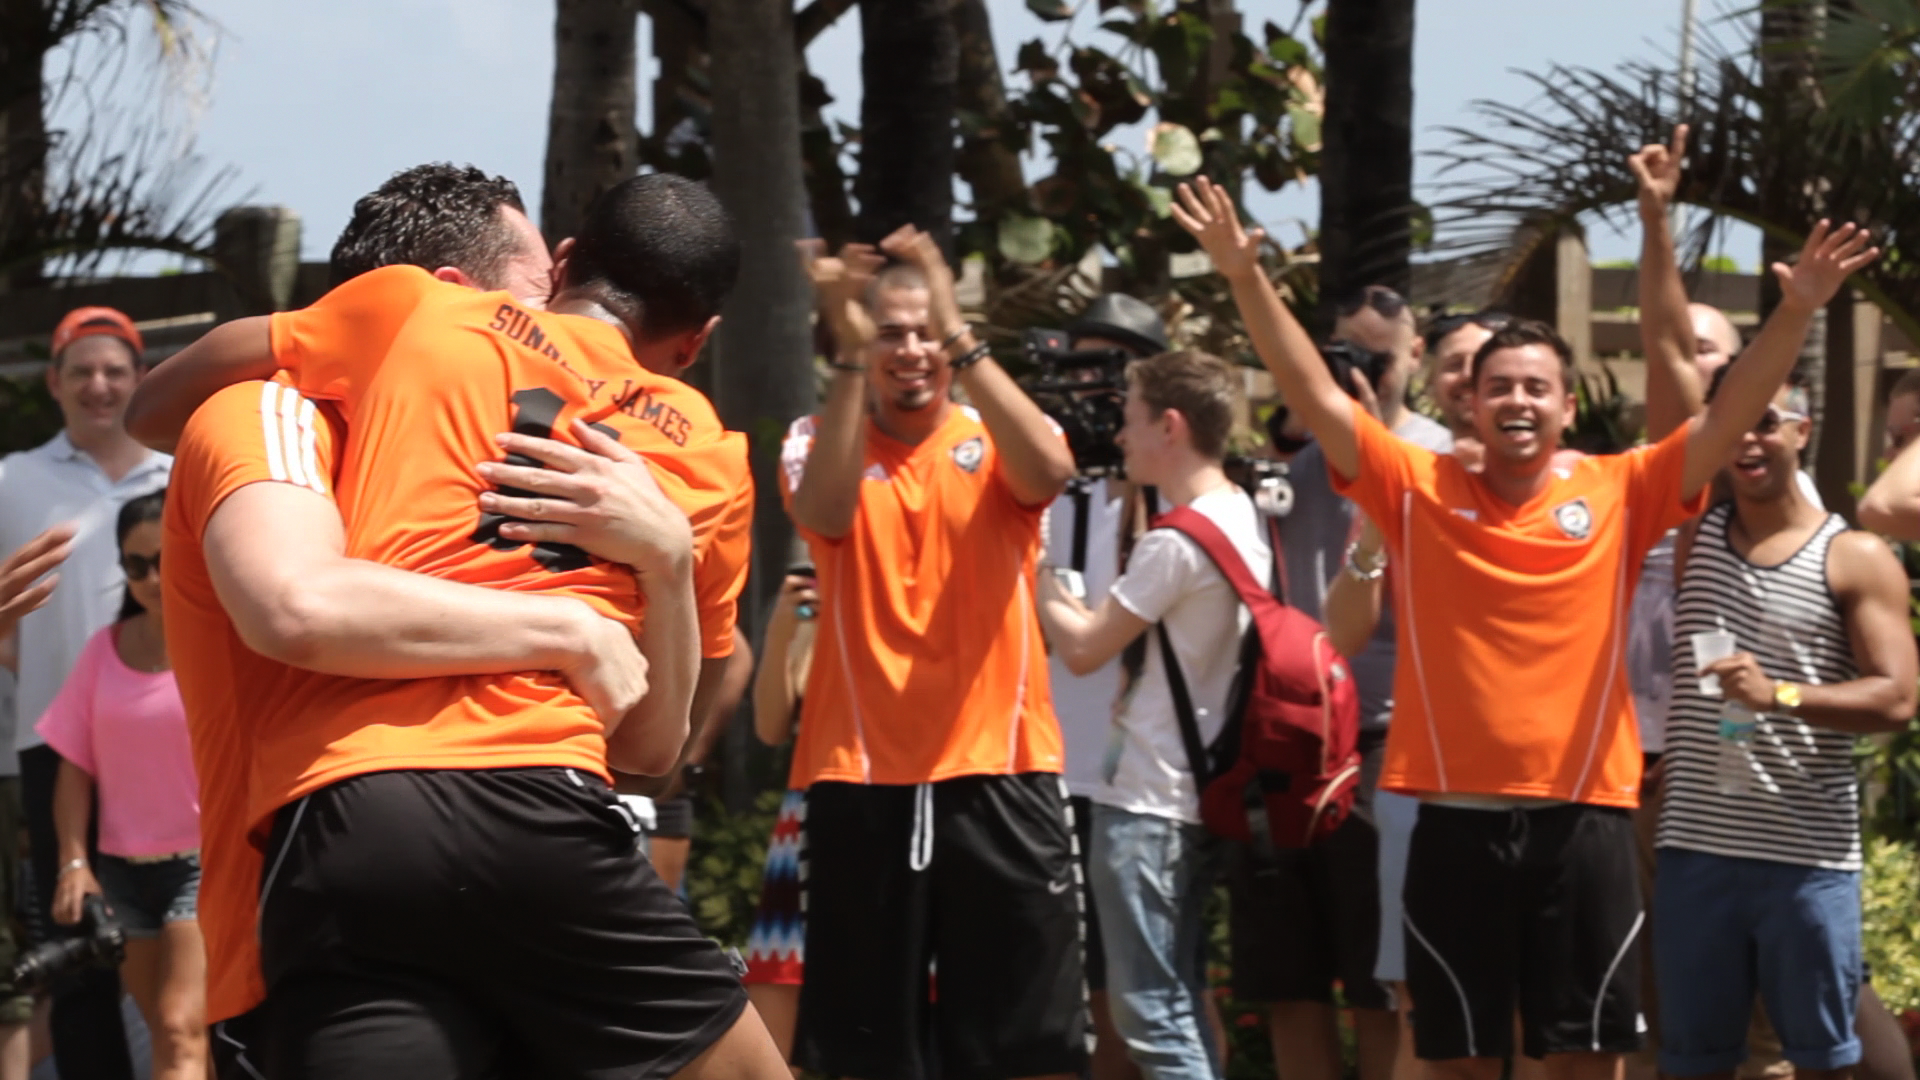 Team Netherlands celebrates a score in the (RED) DJ